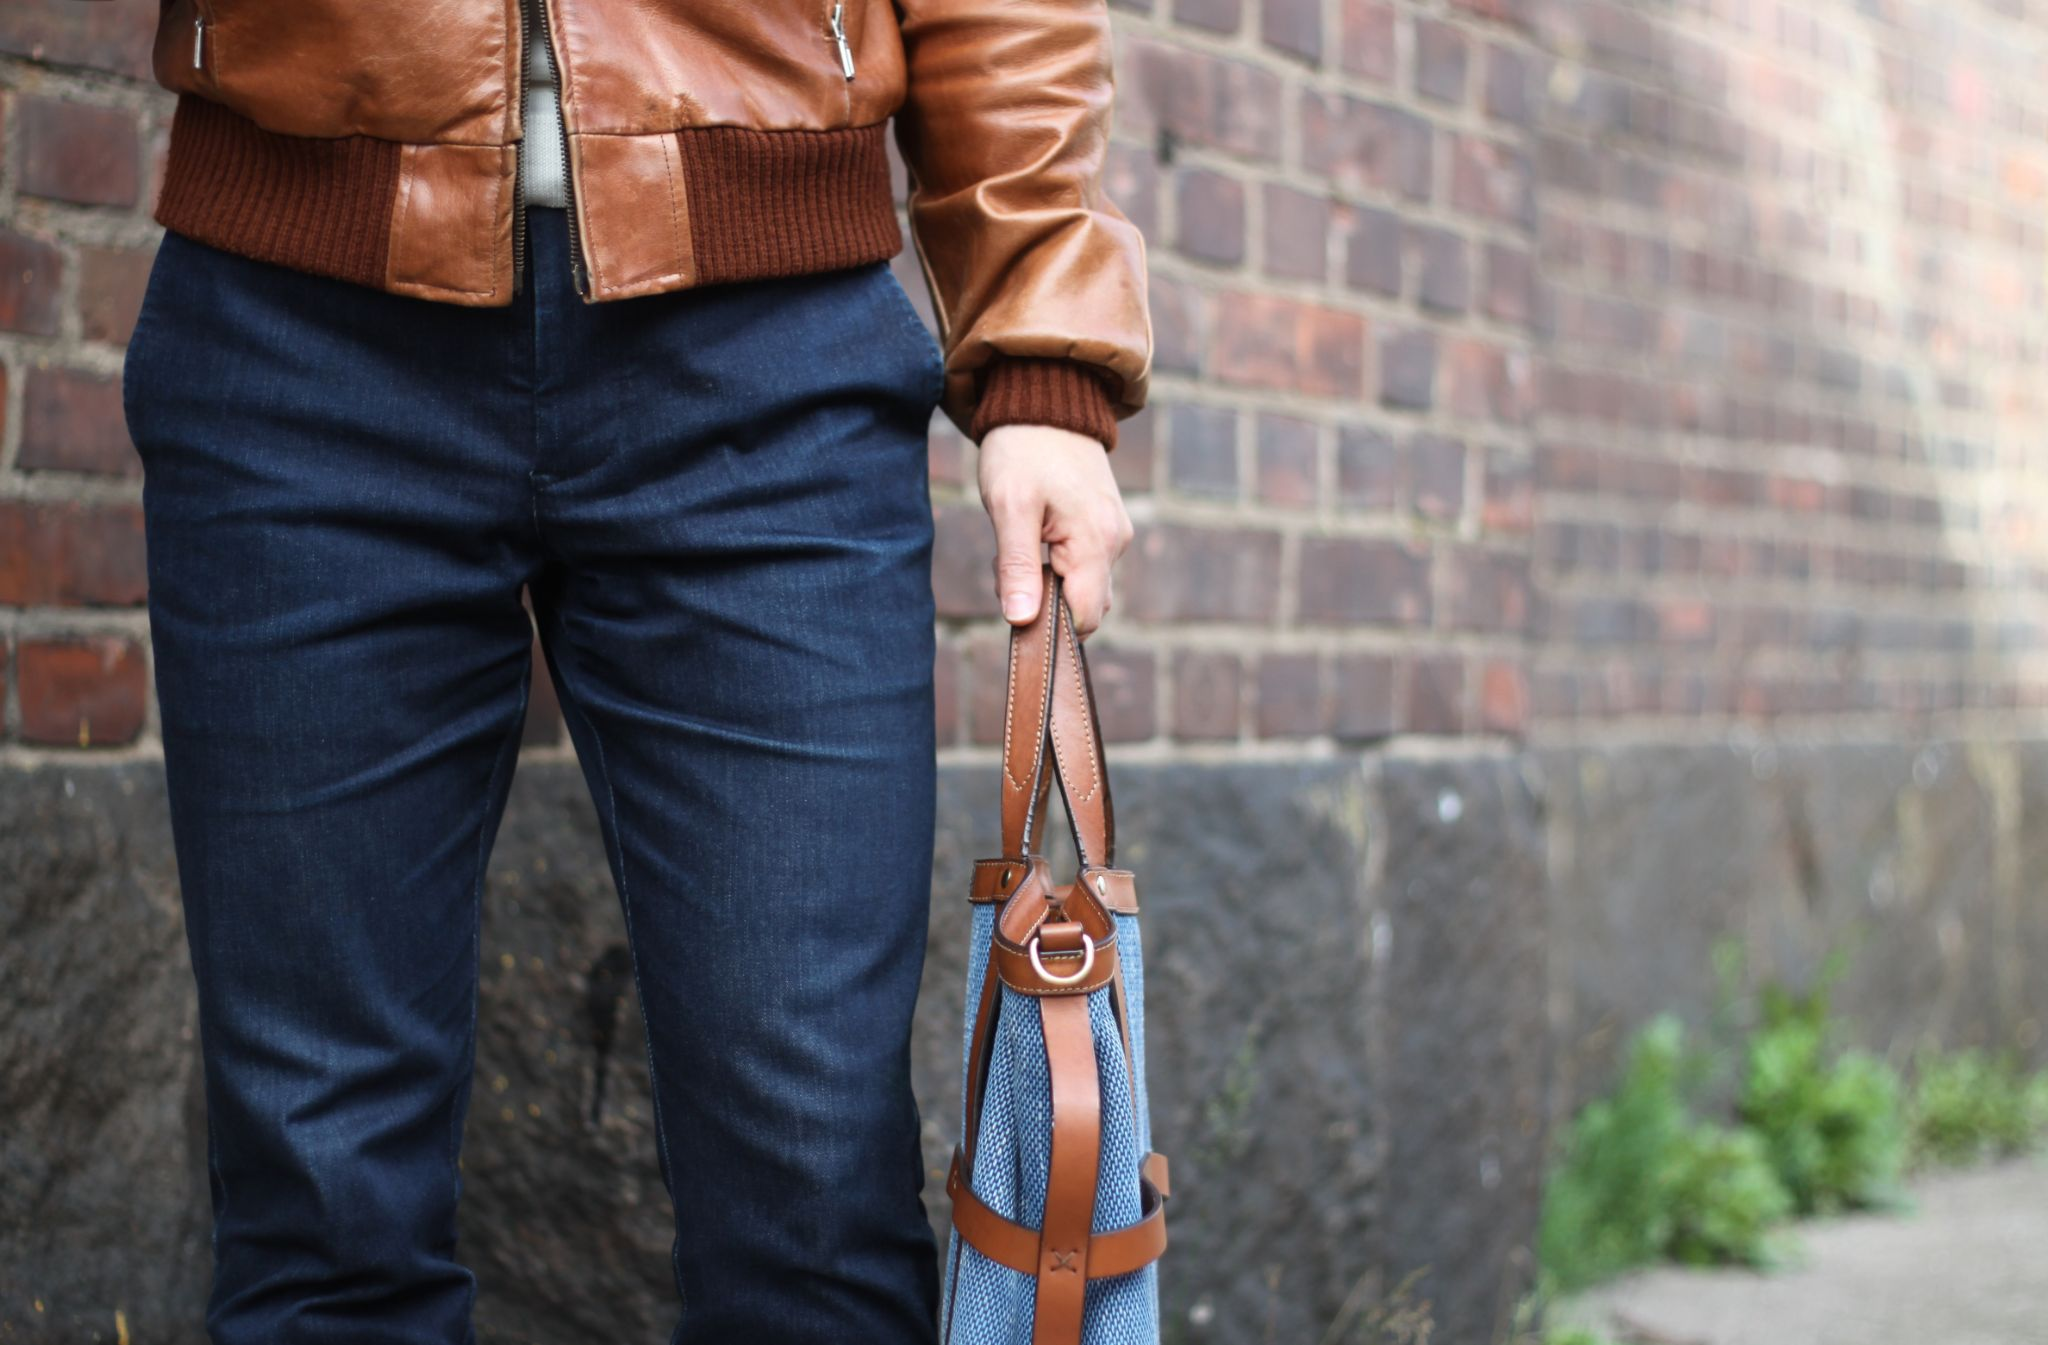 Mismo bag details and A-1 leather jacket.